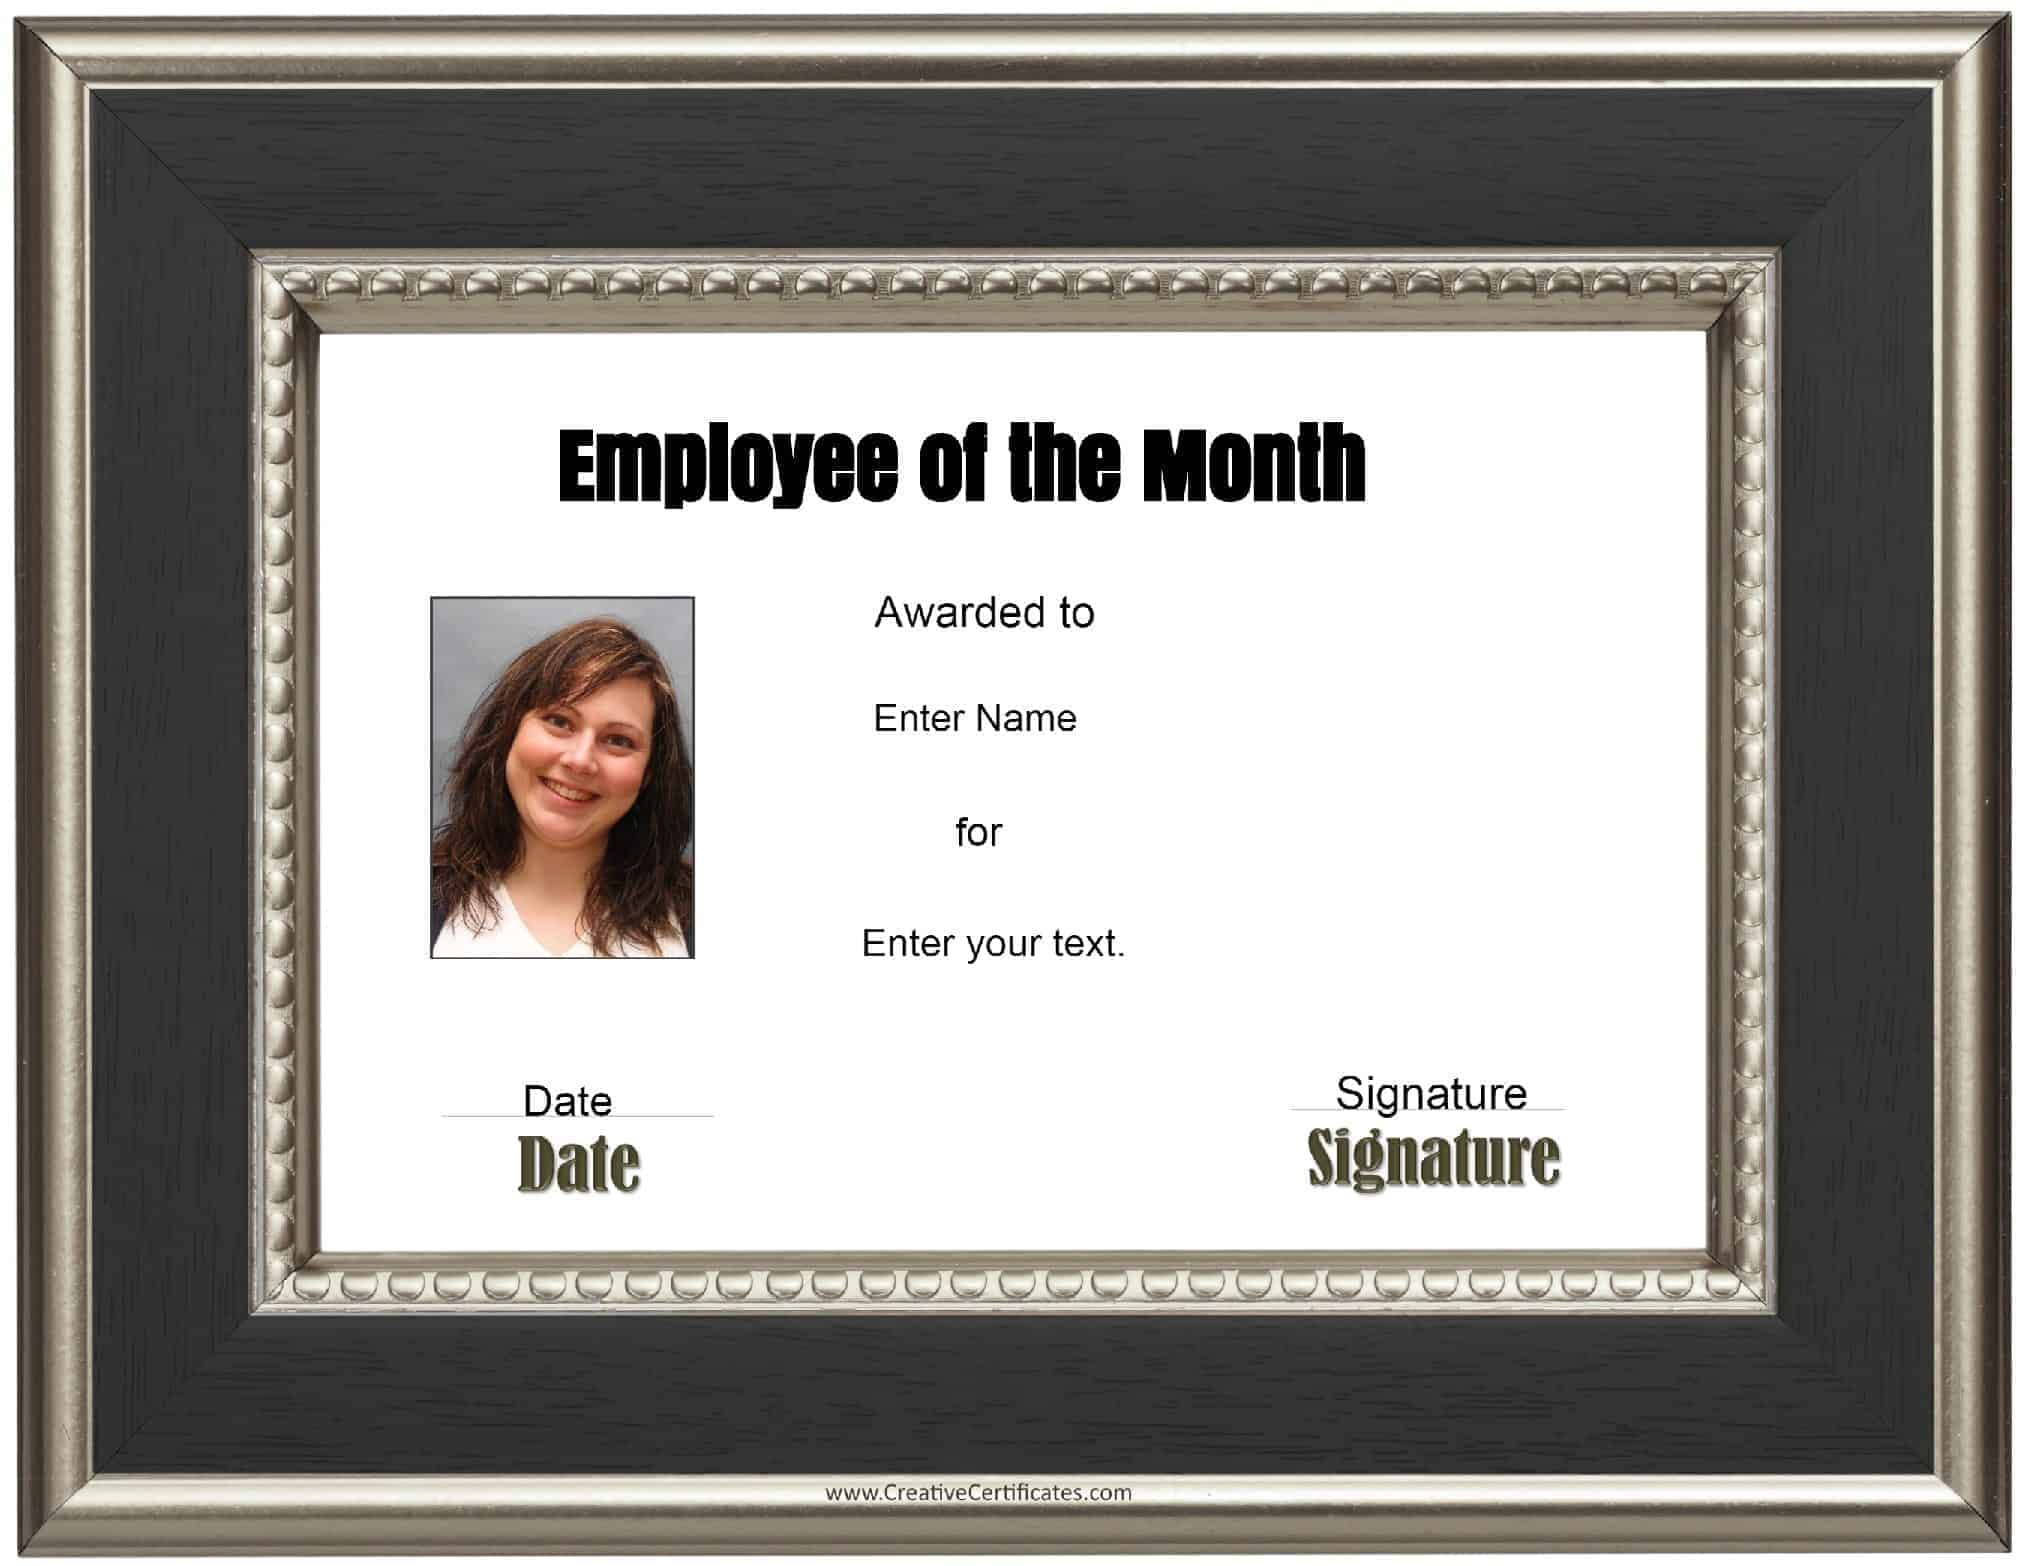 Employee Of The Month Certificate · Green · Gold · Black  Free Employee Of The Month Certificate Template